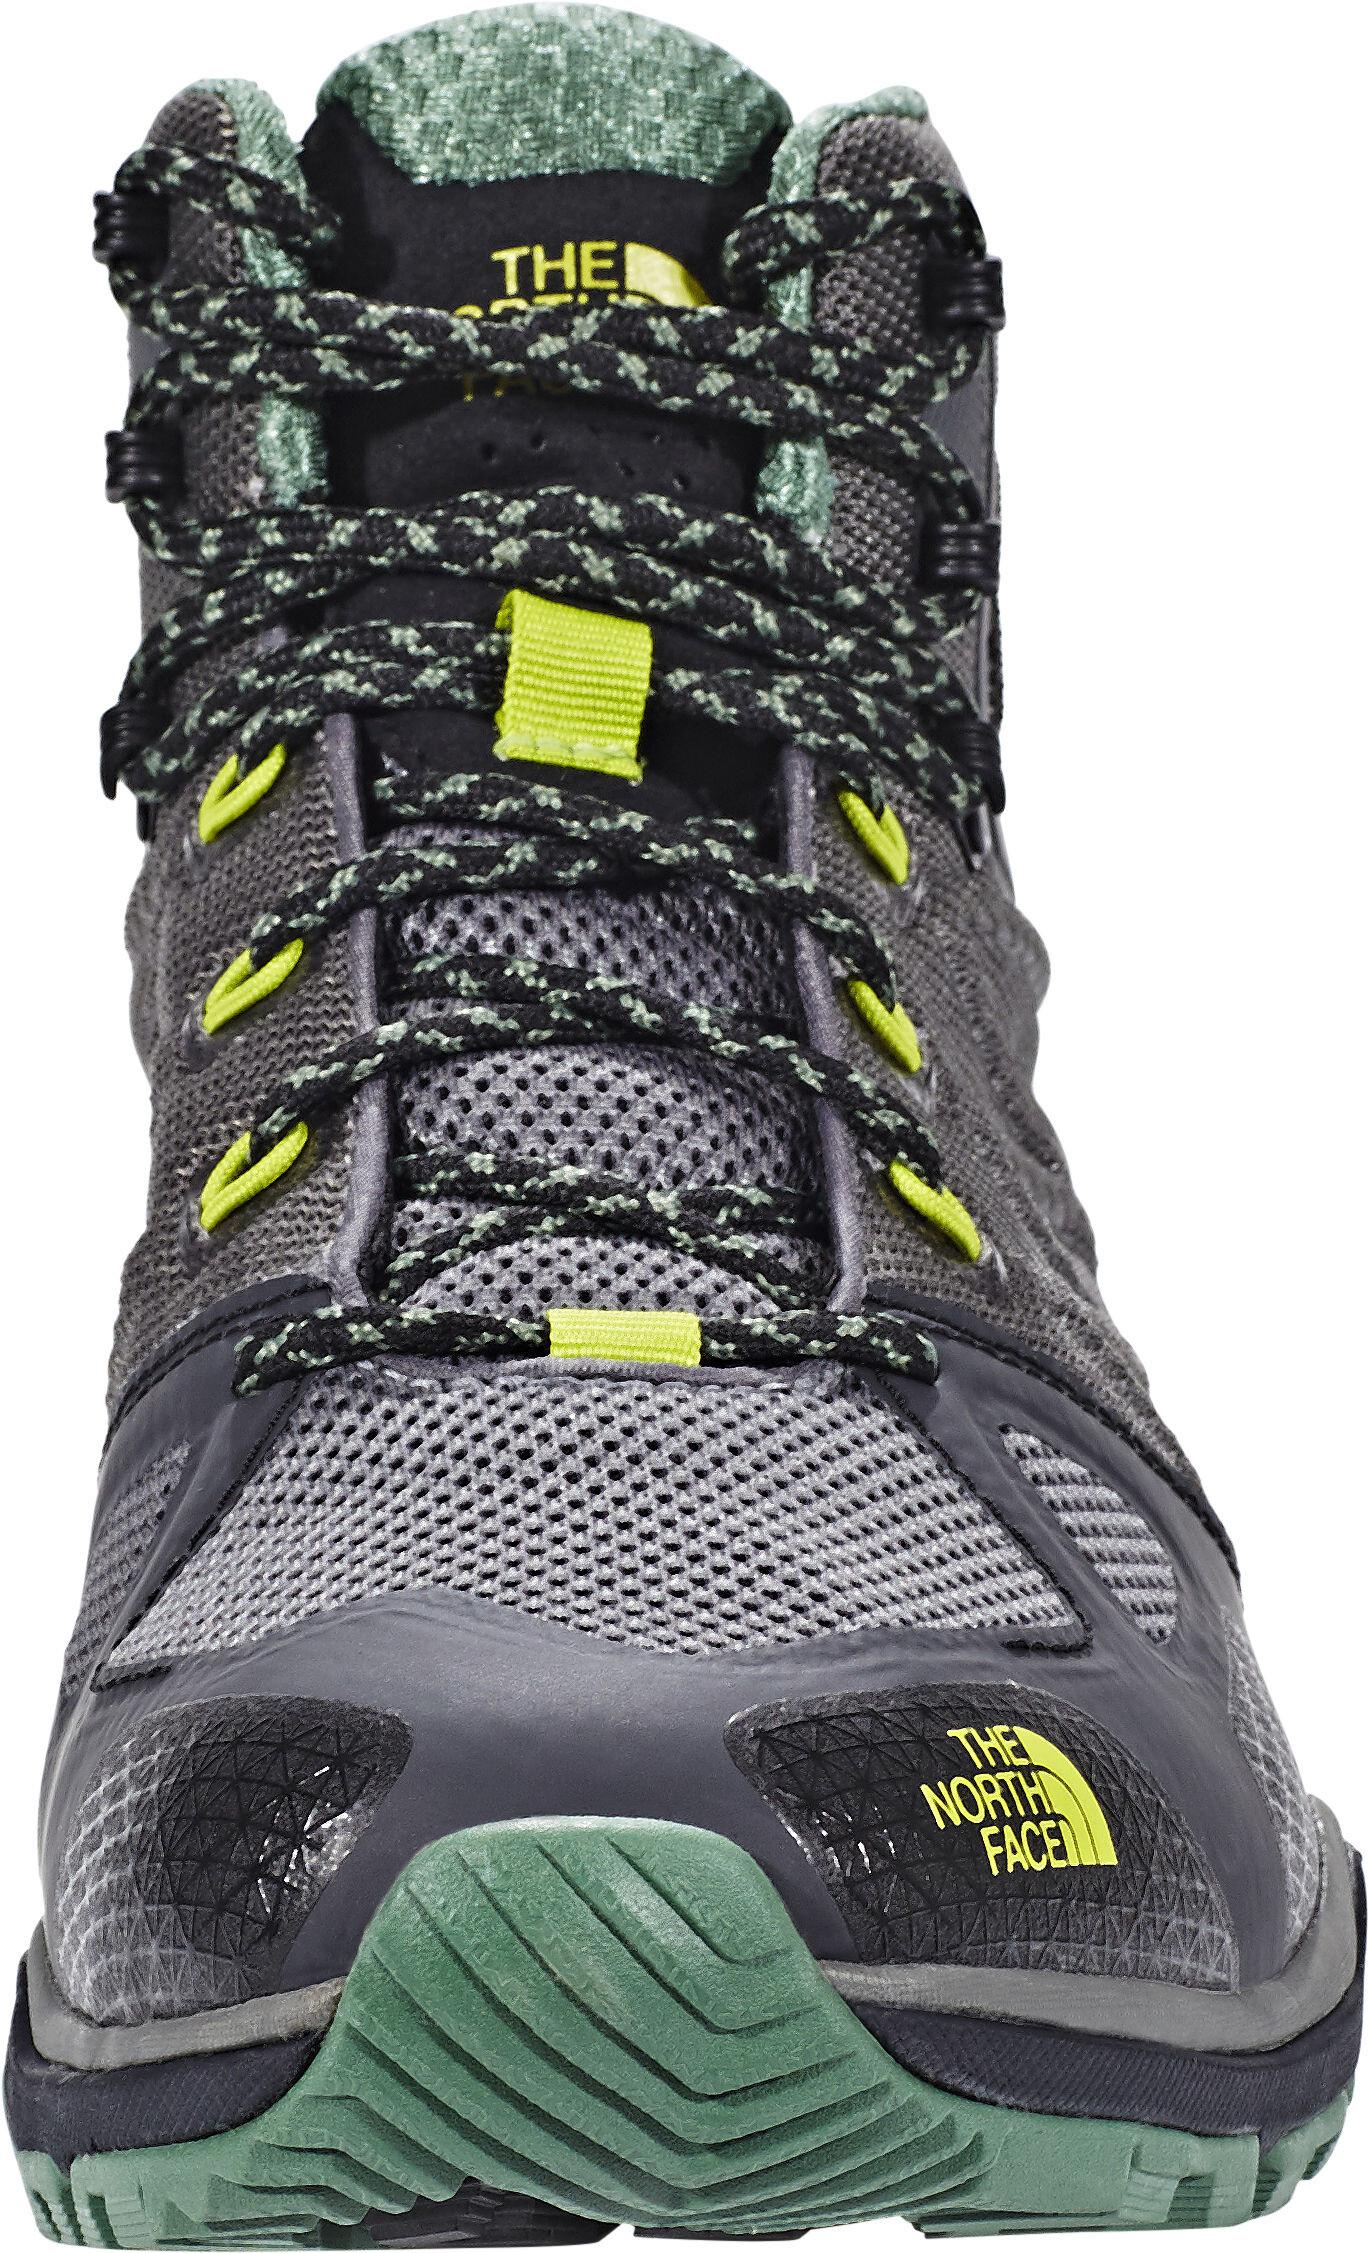 the best attitude 8ea59 0b2fc The North Face Ultra Fastpack II Mid GTX Shoes Men phantom grey/lime green